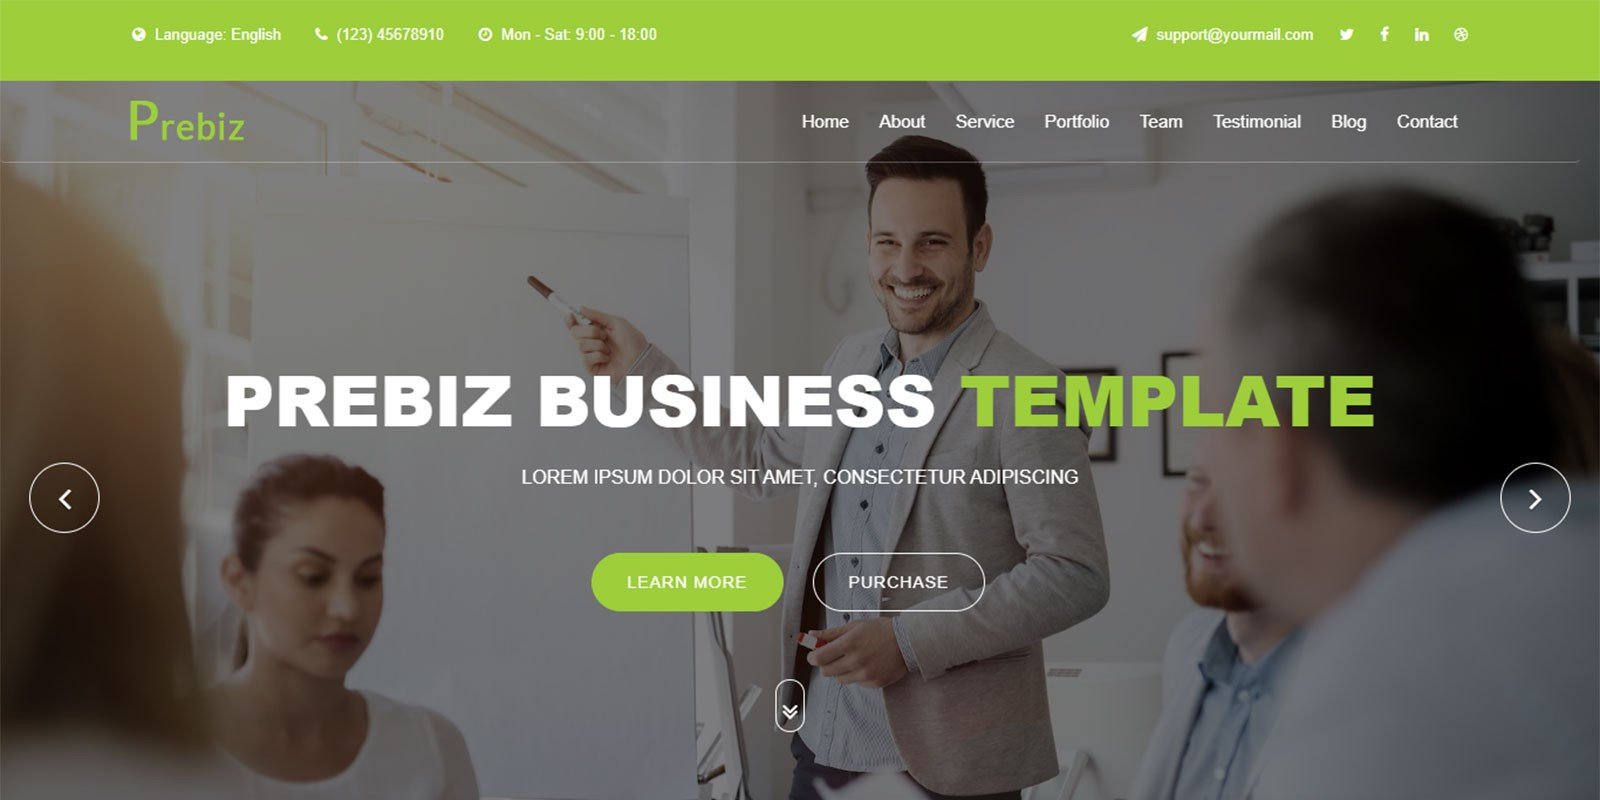 Prebiz - Digital Corporate Business Template